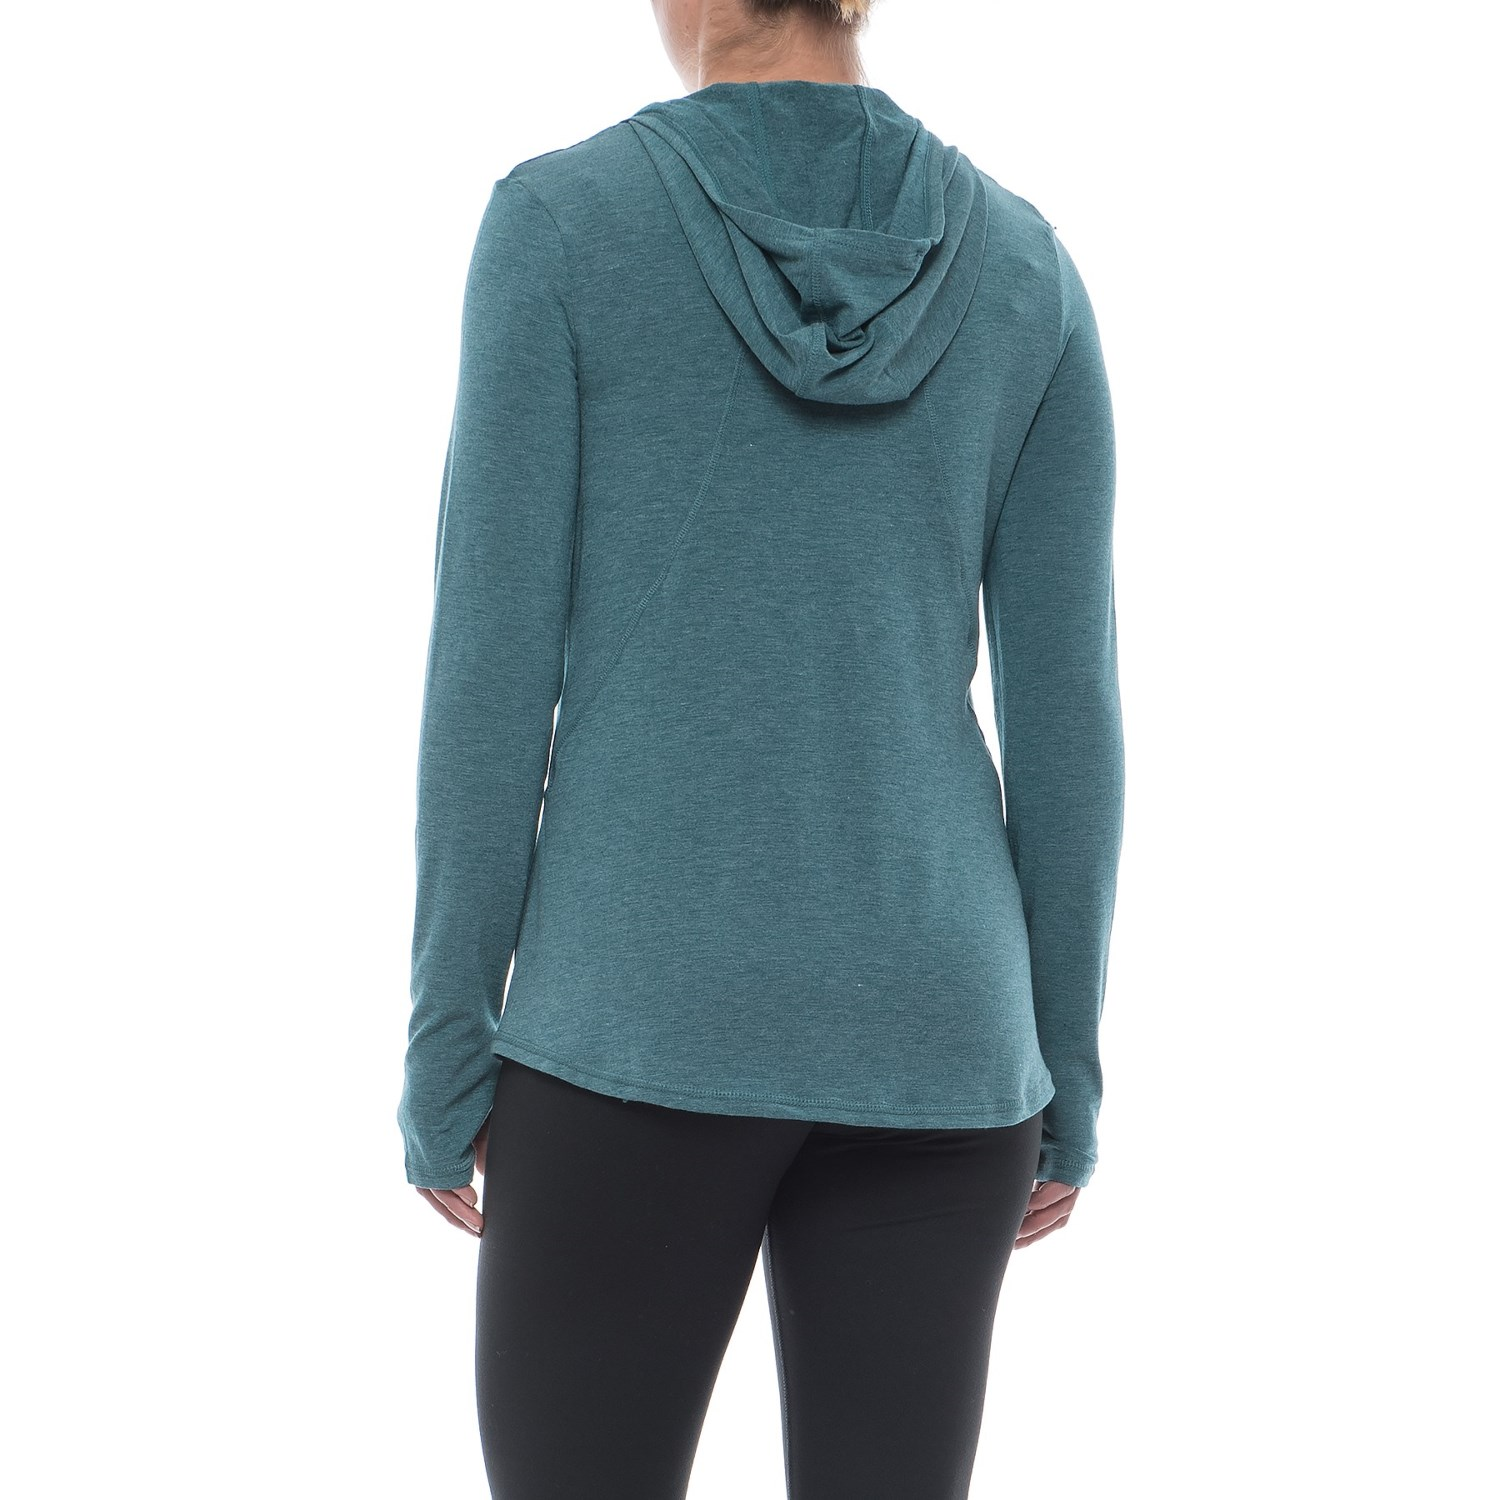 Apana Cowl Neck Hooded Shirt (For Women) - Save 65%